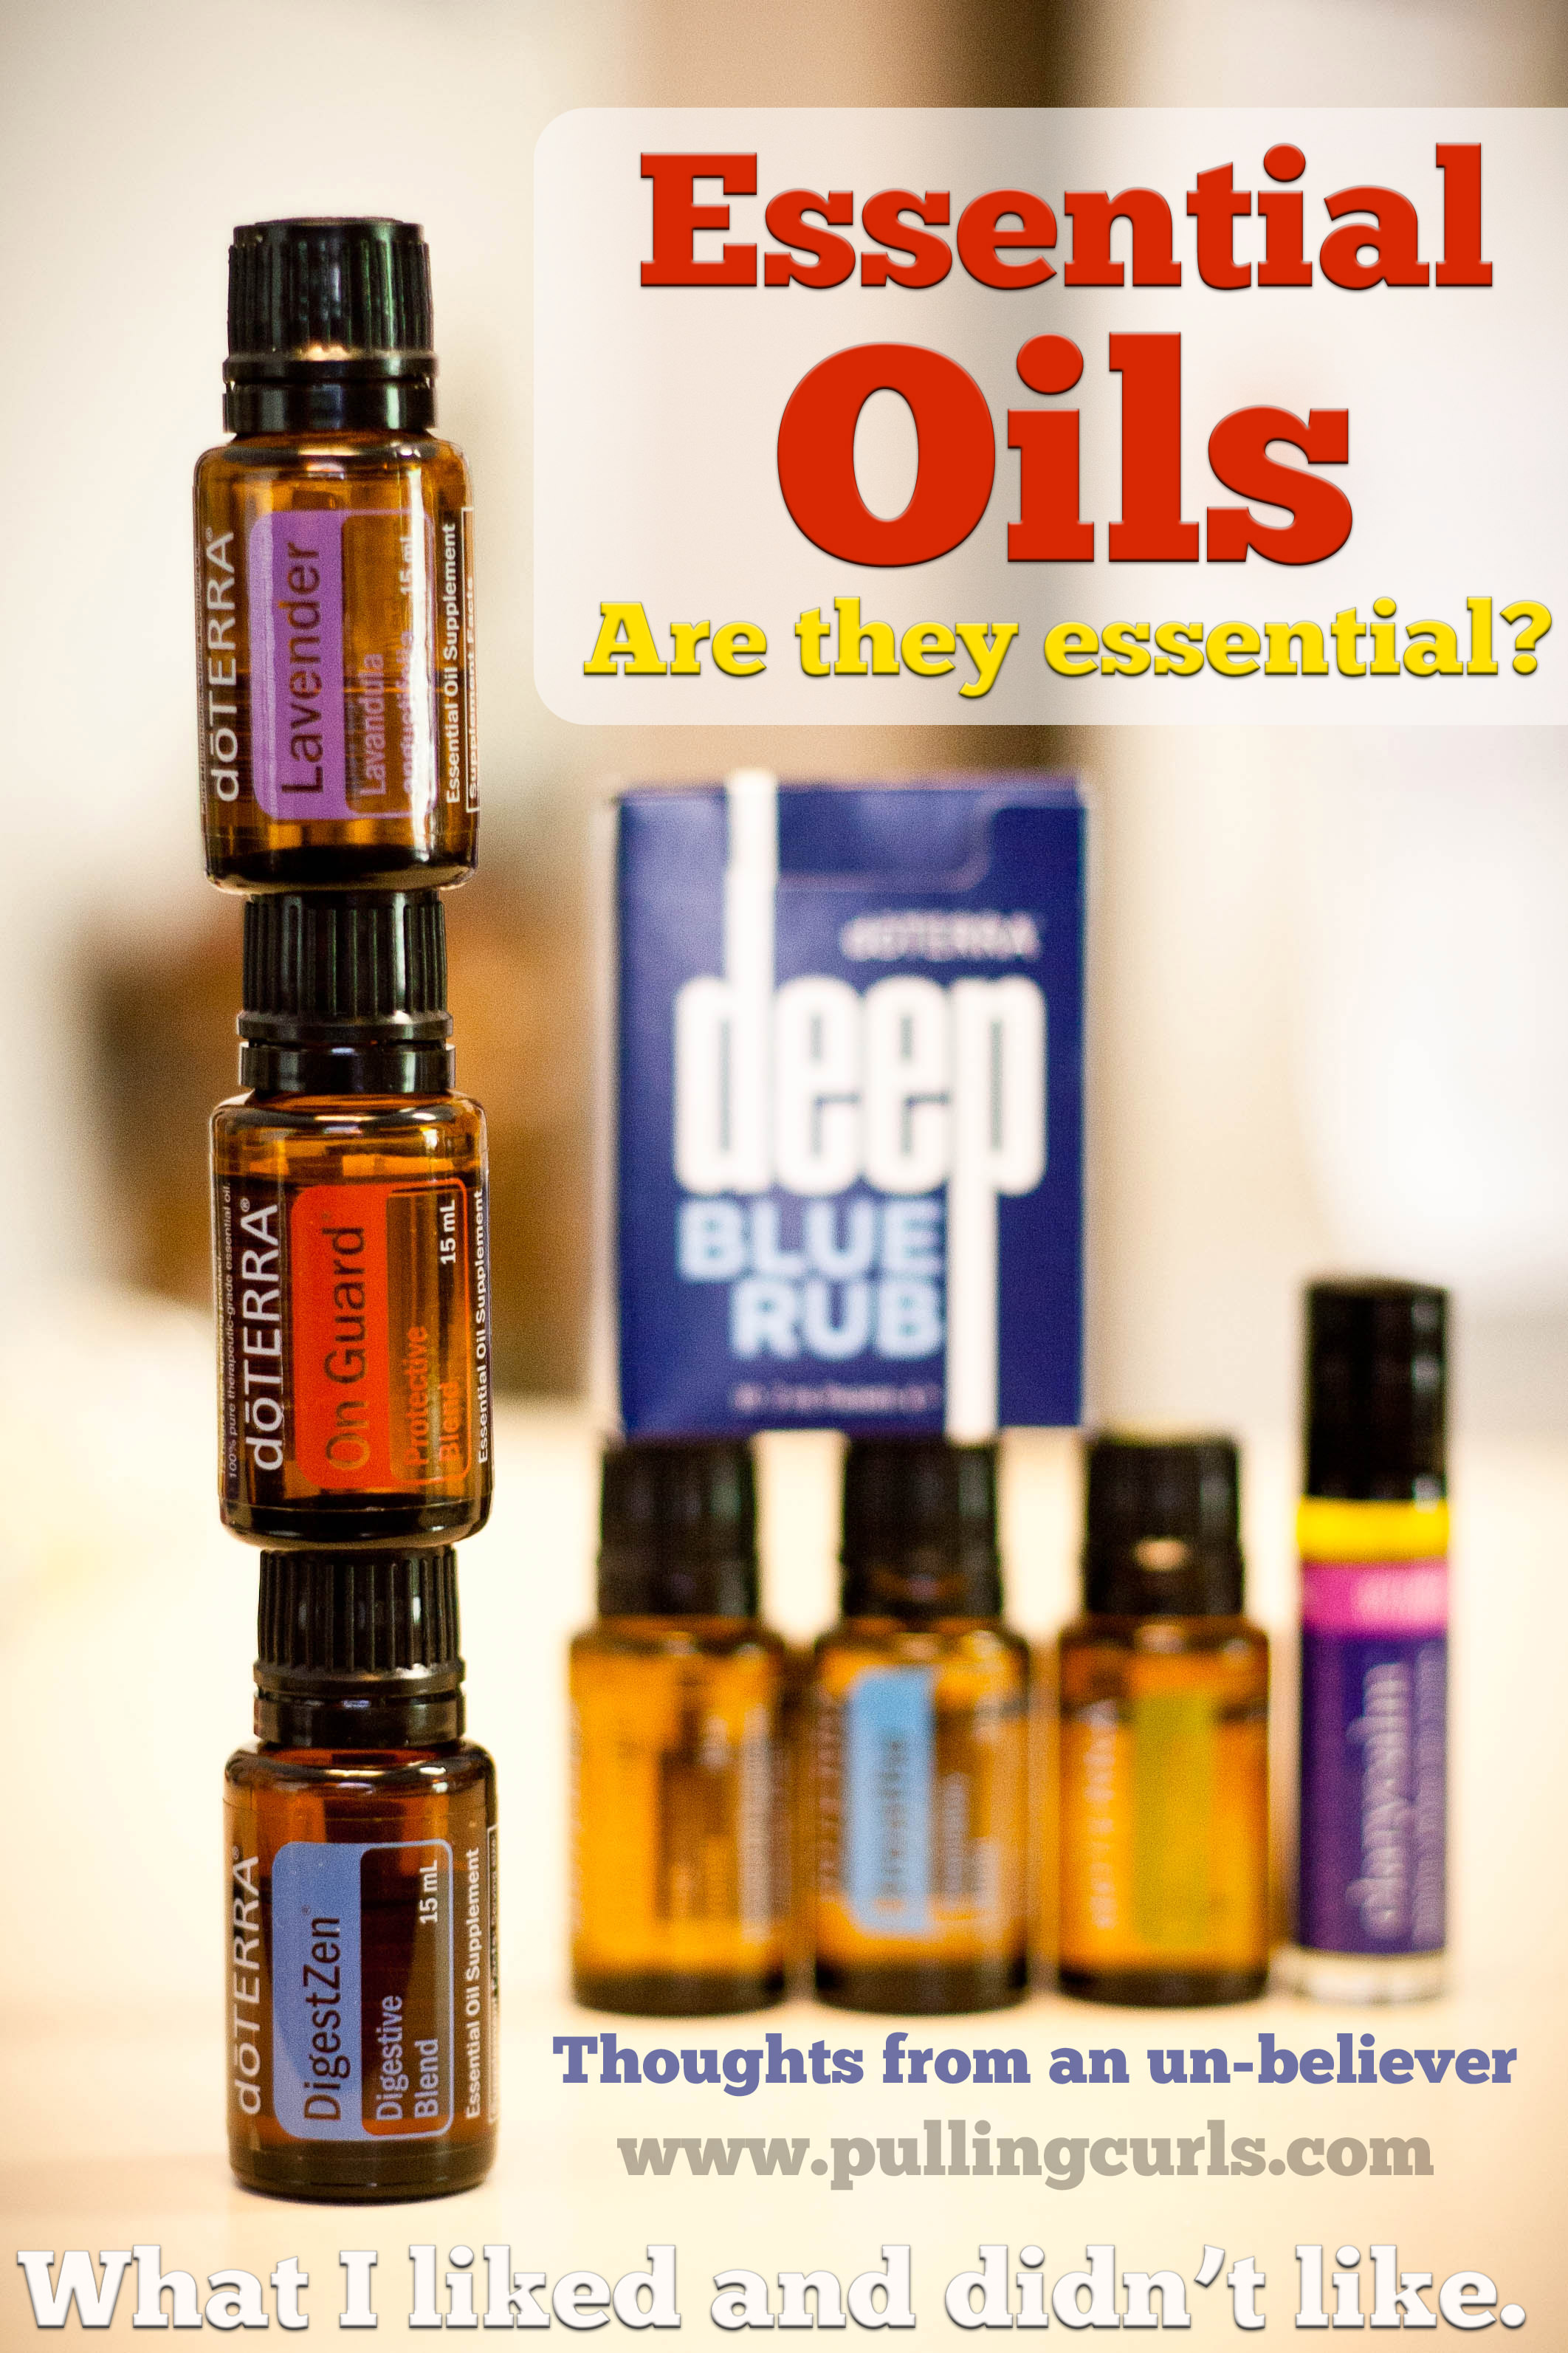 Do essential oils work? I bought some for myself, I don't sell them and I'm an RN. Do they work? Some did, some didn't -- come find out what I thought!